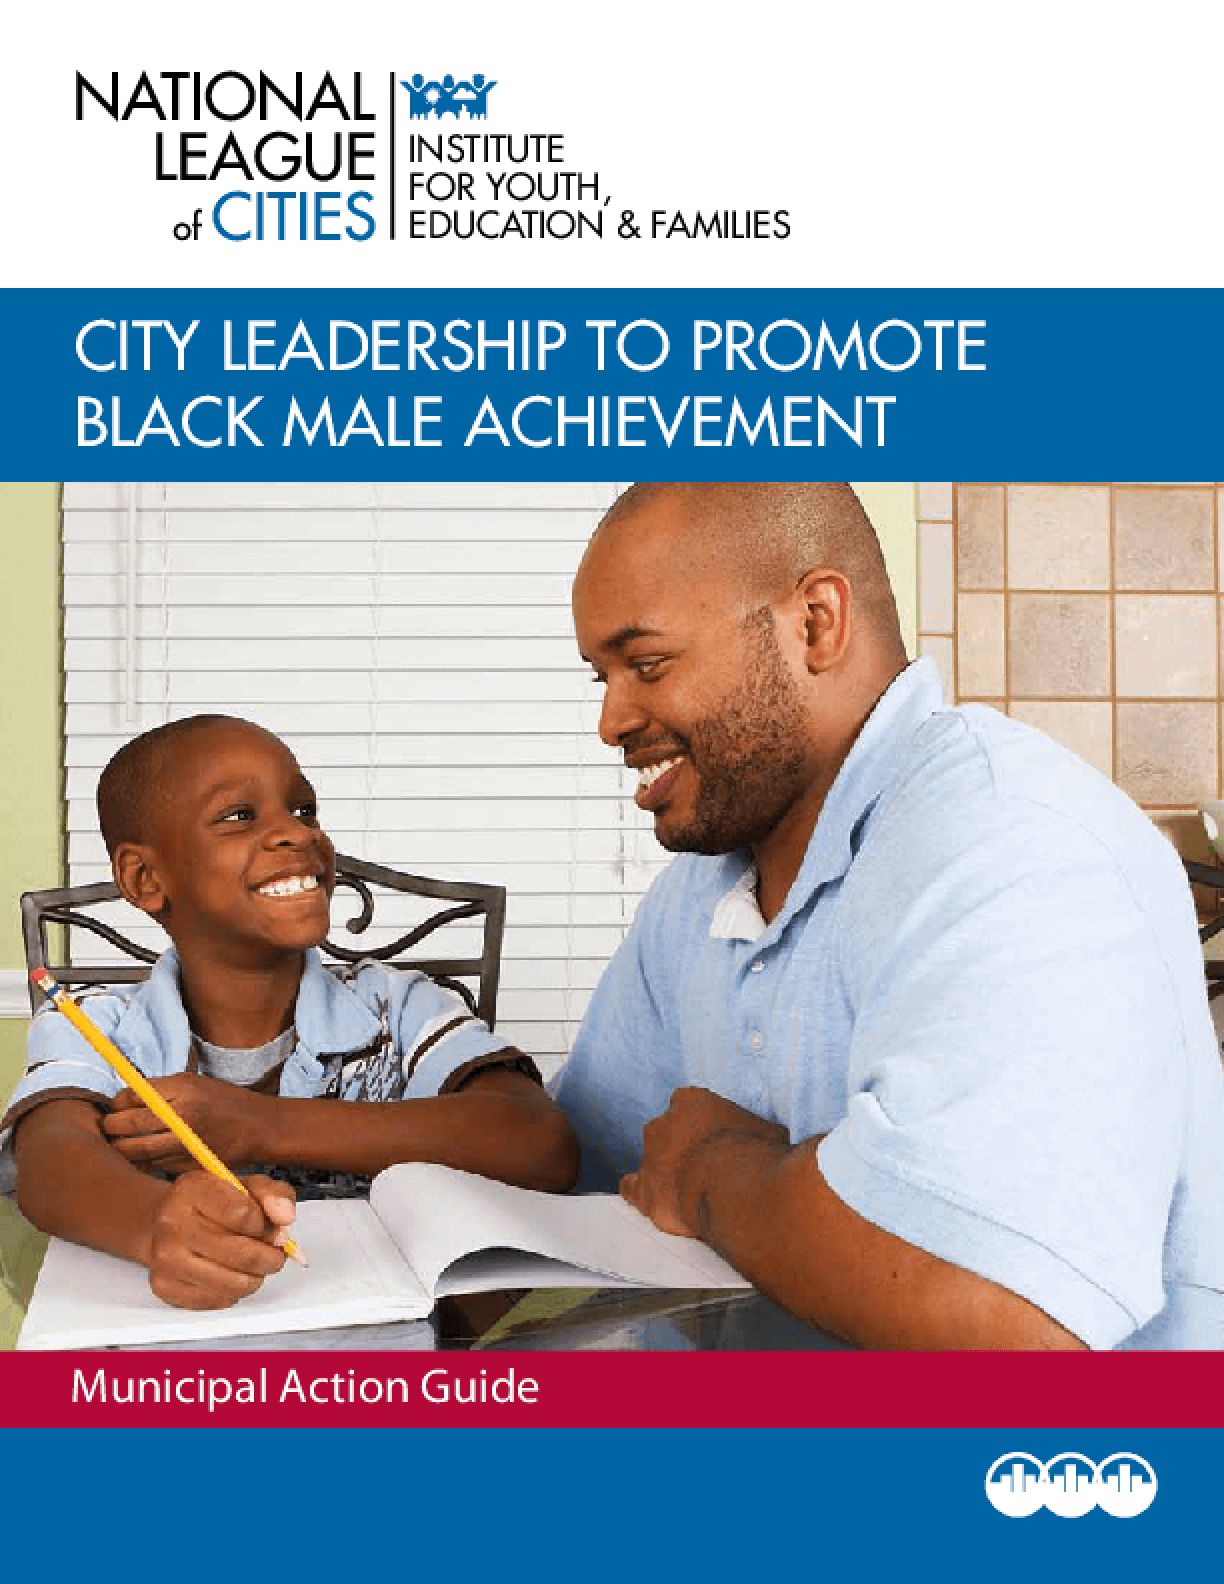 City Leadership to Promote Black Male Achievement